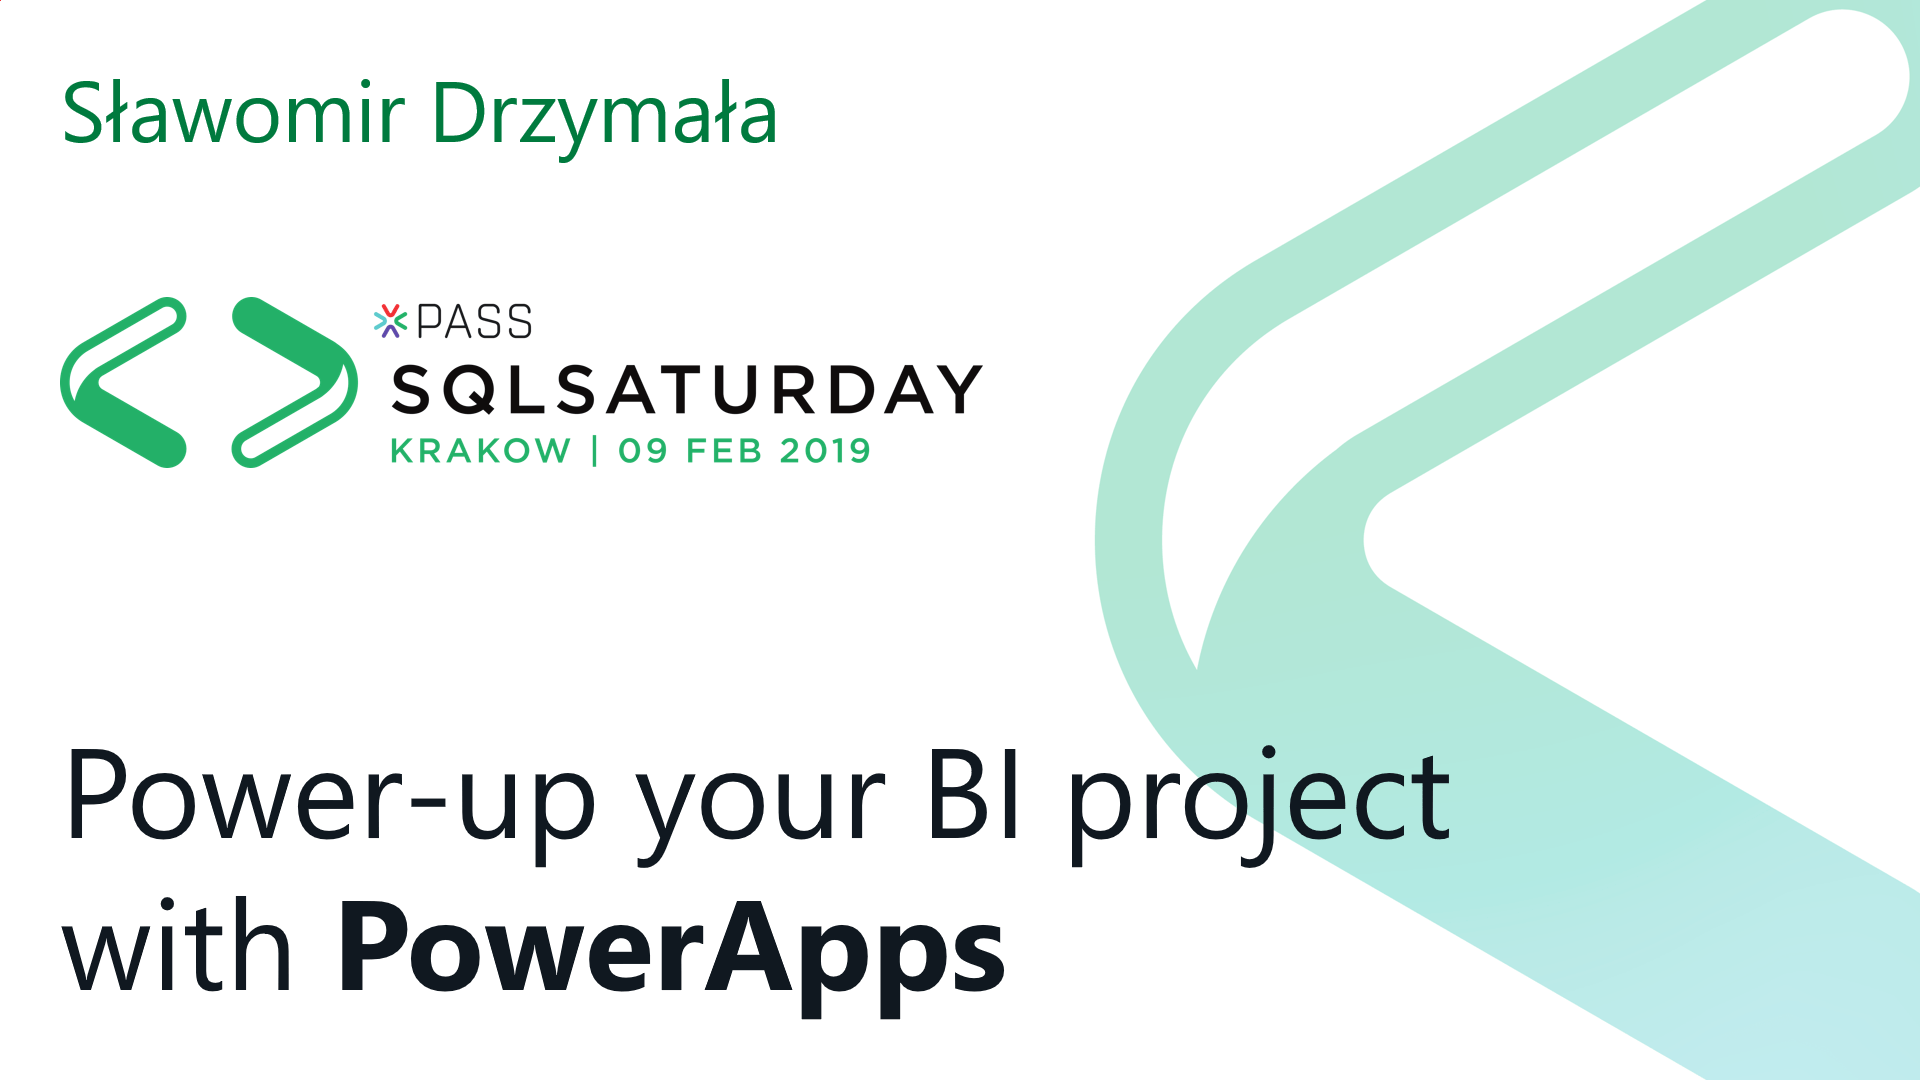 Slawomir Drzymala - Power-up your BI project with PowerApps